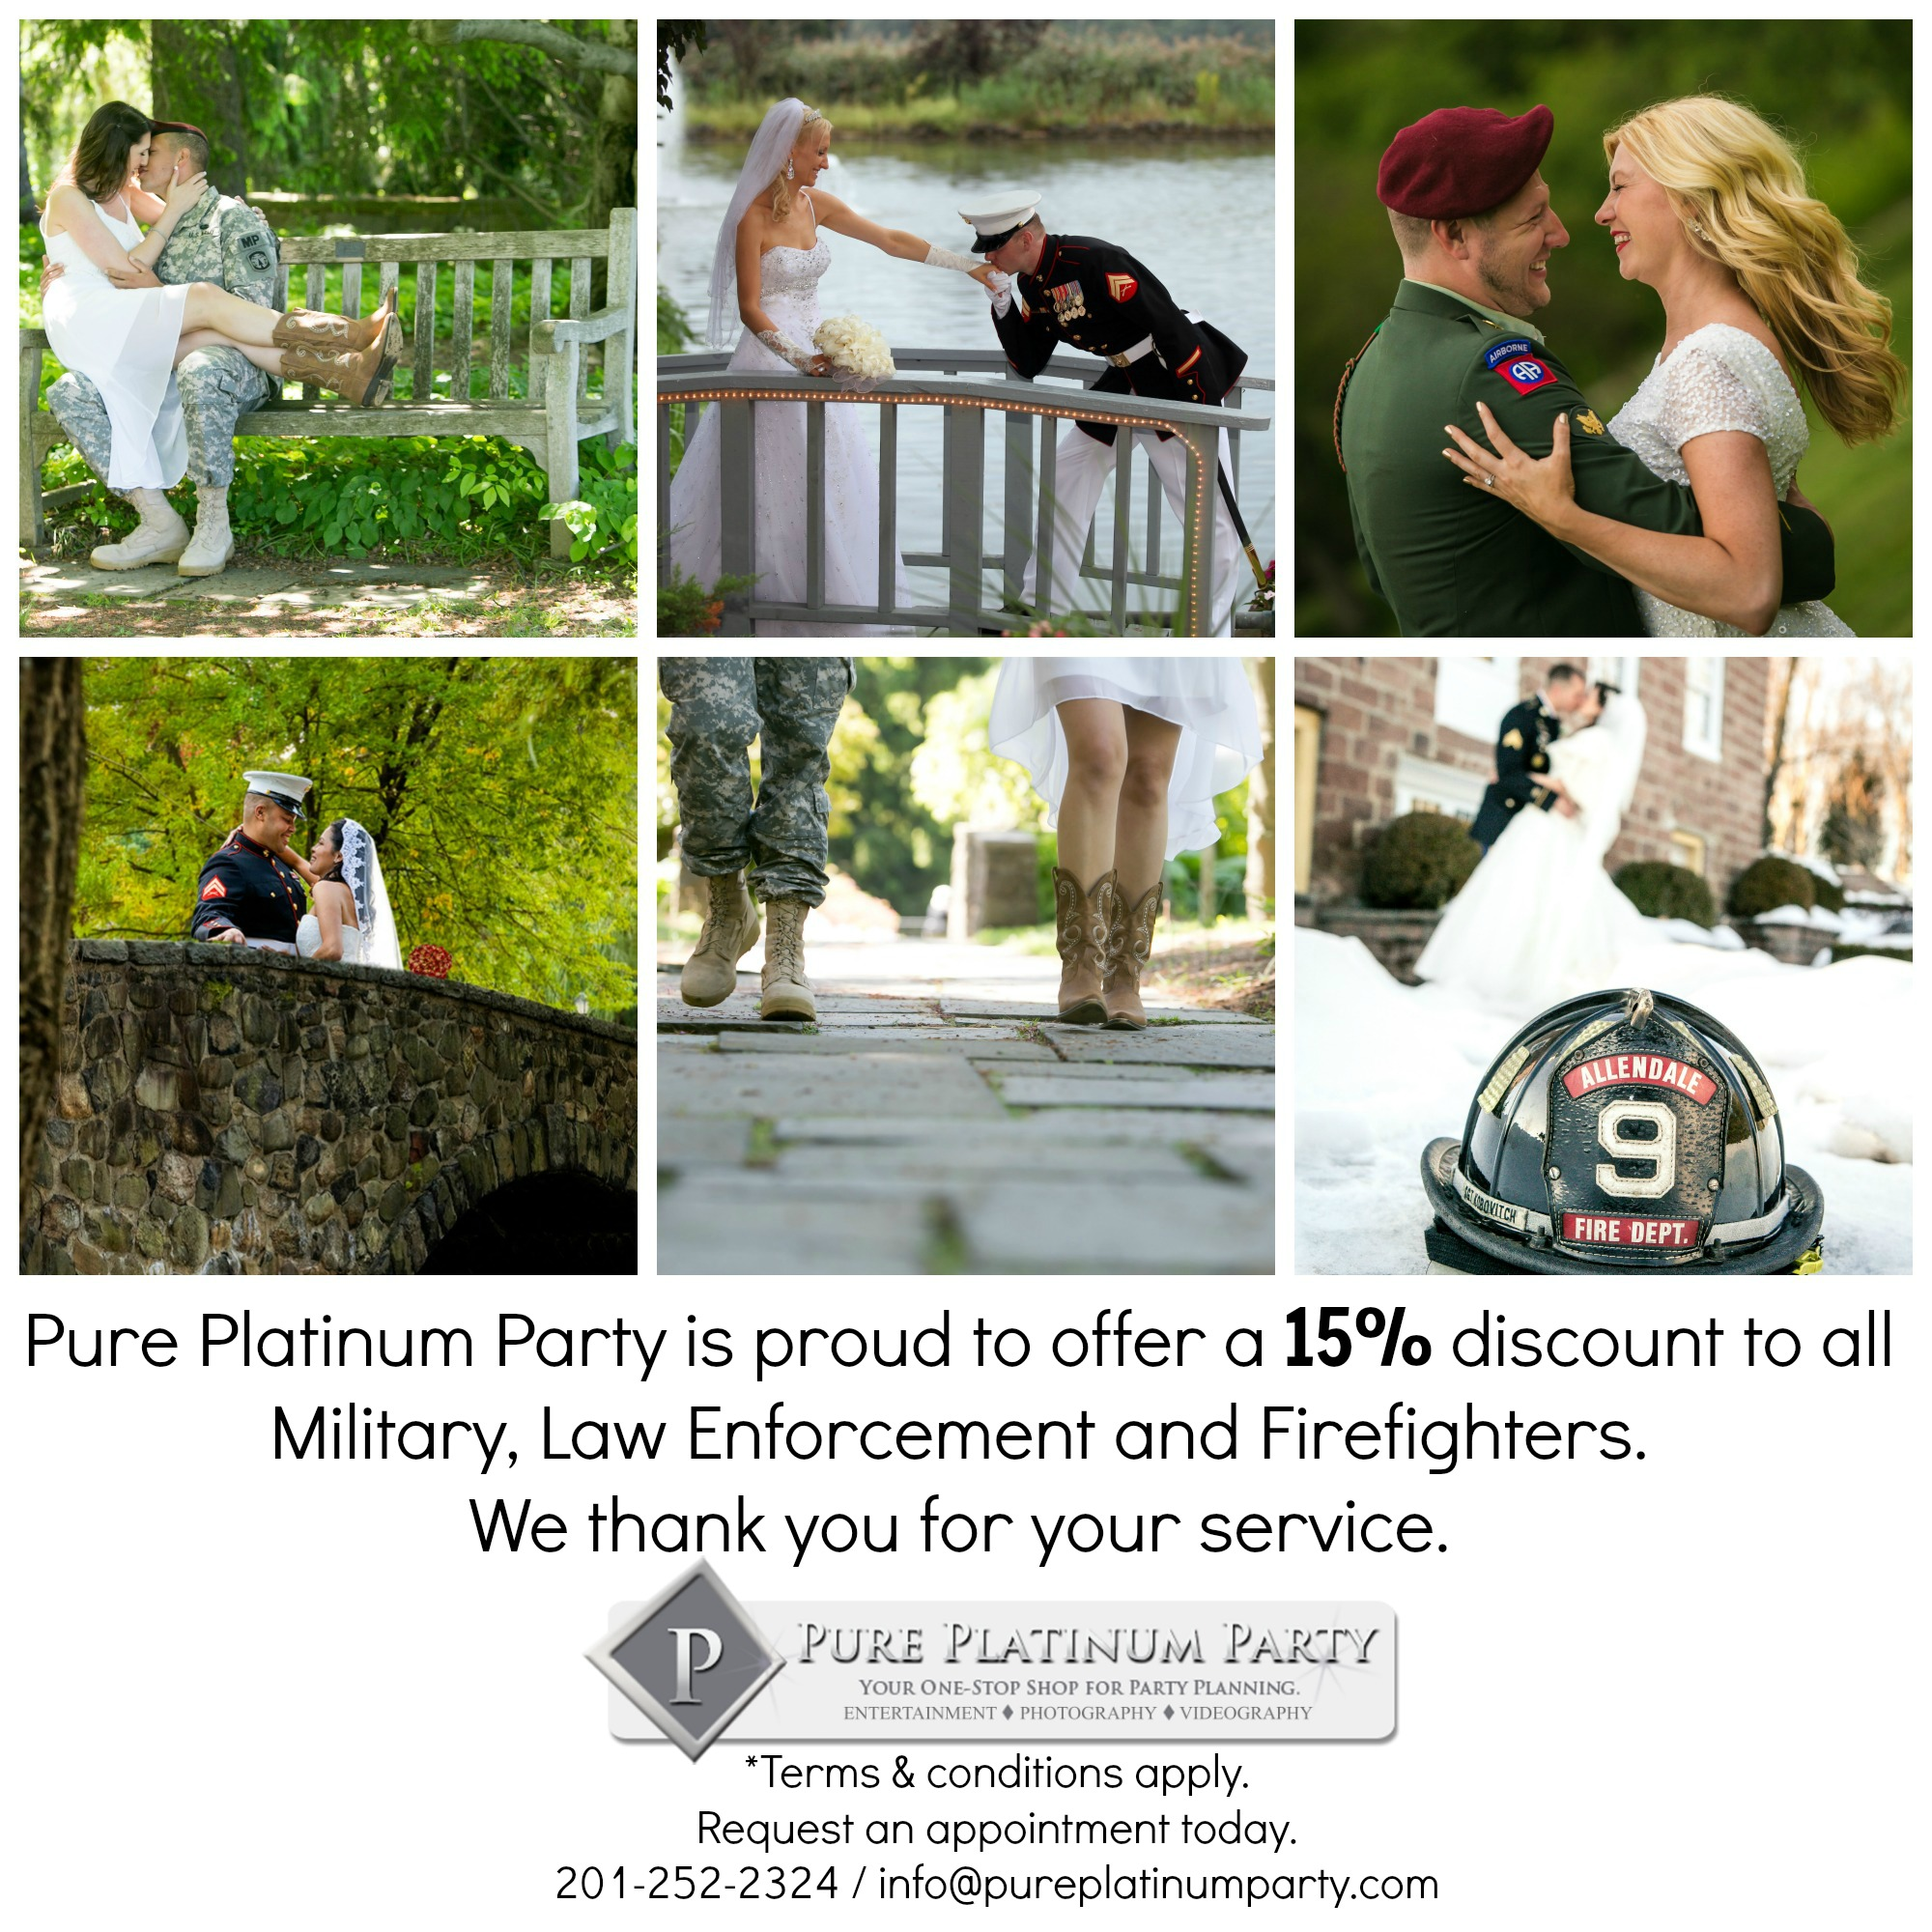 Proudly Offering a 15% Discount to All Military, Law Enforcement, and Firefighters